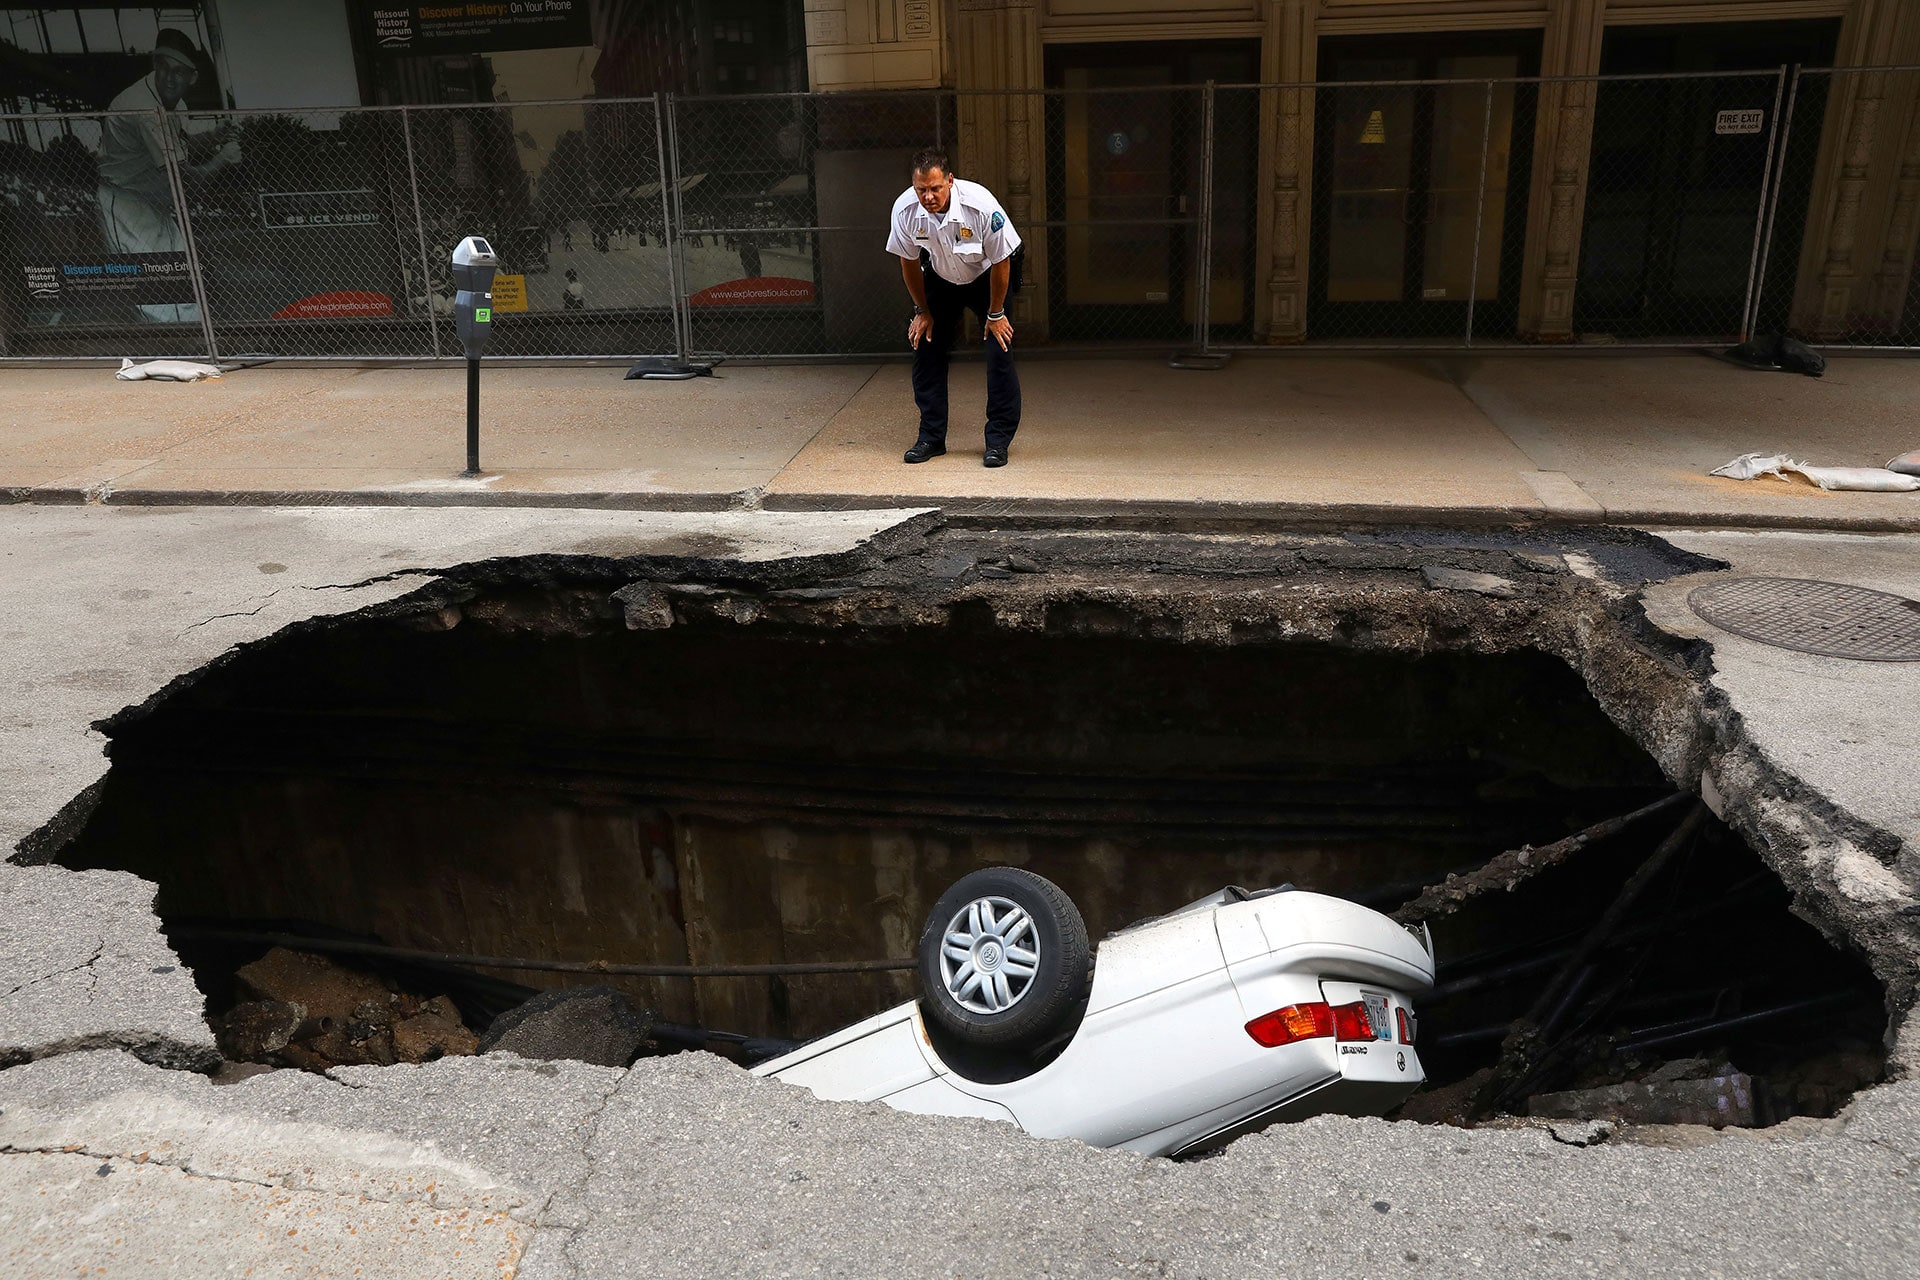 A police officer looks over a large sinkhole